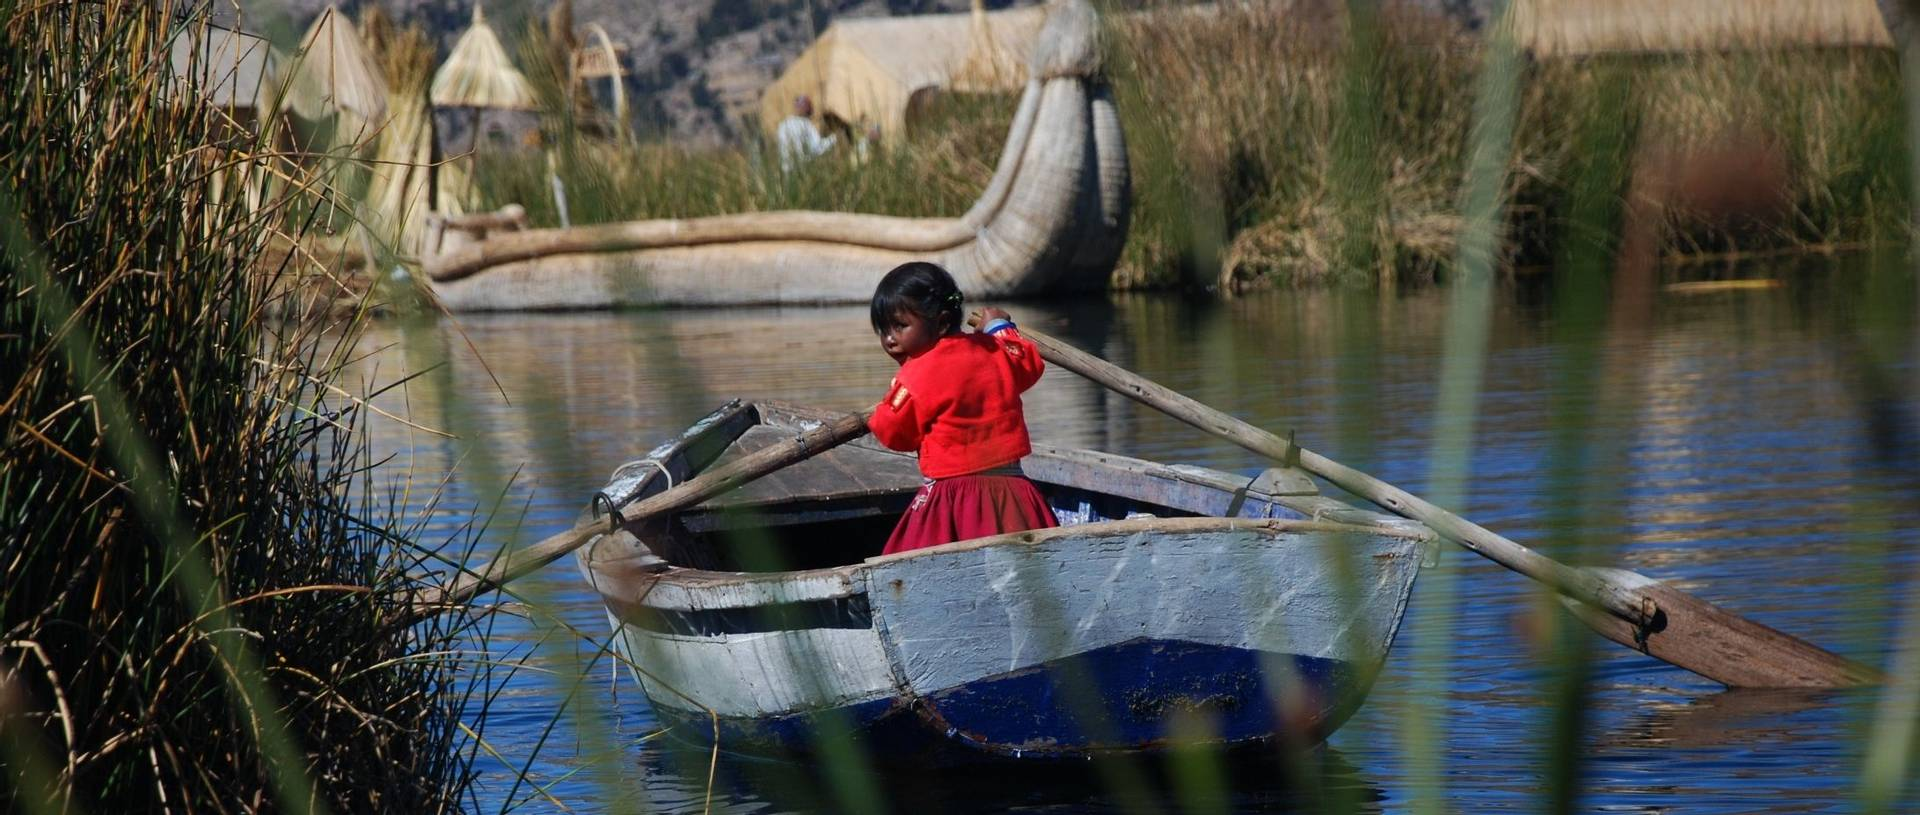 Little Girl In A Boat On Lake Titicaca